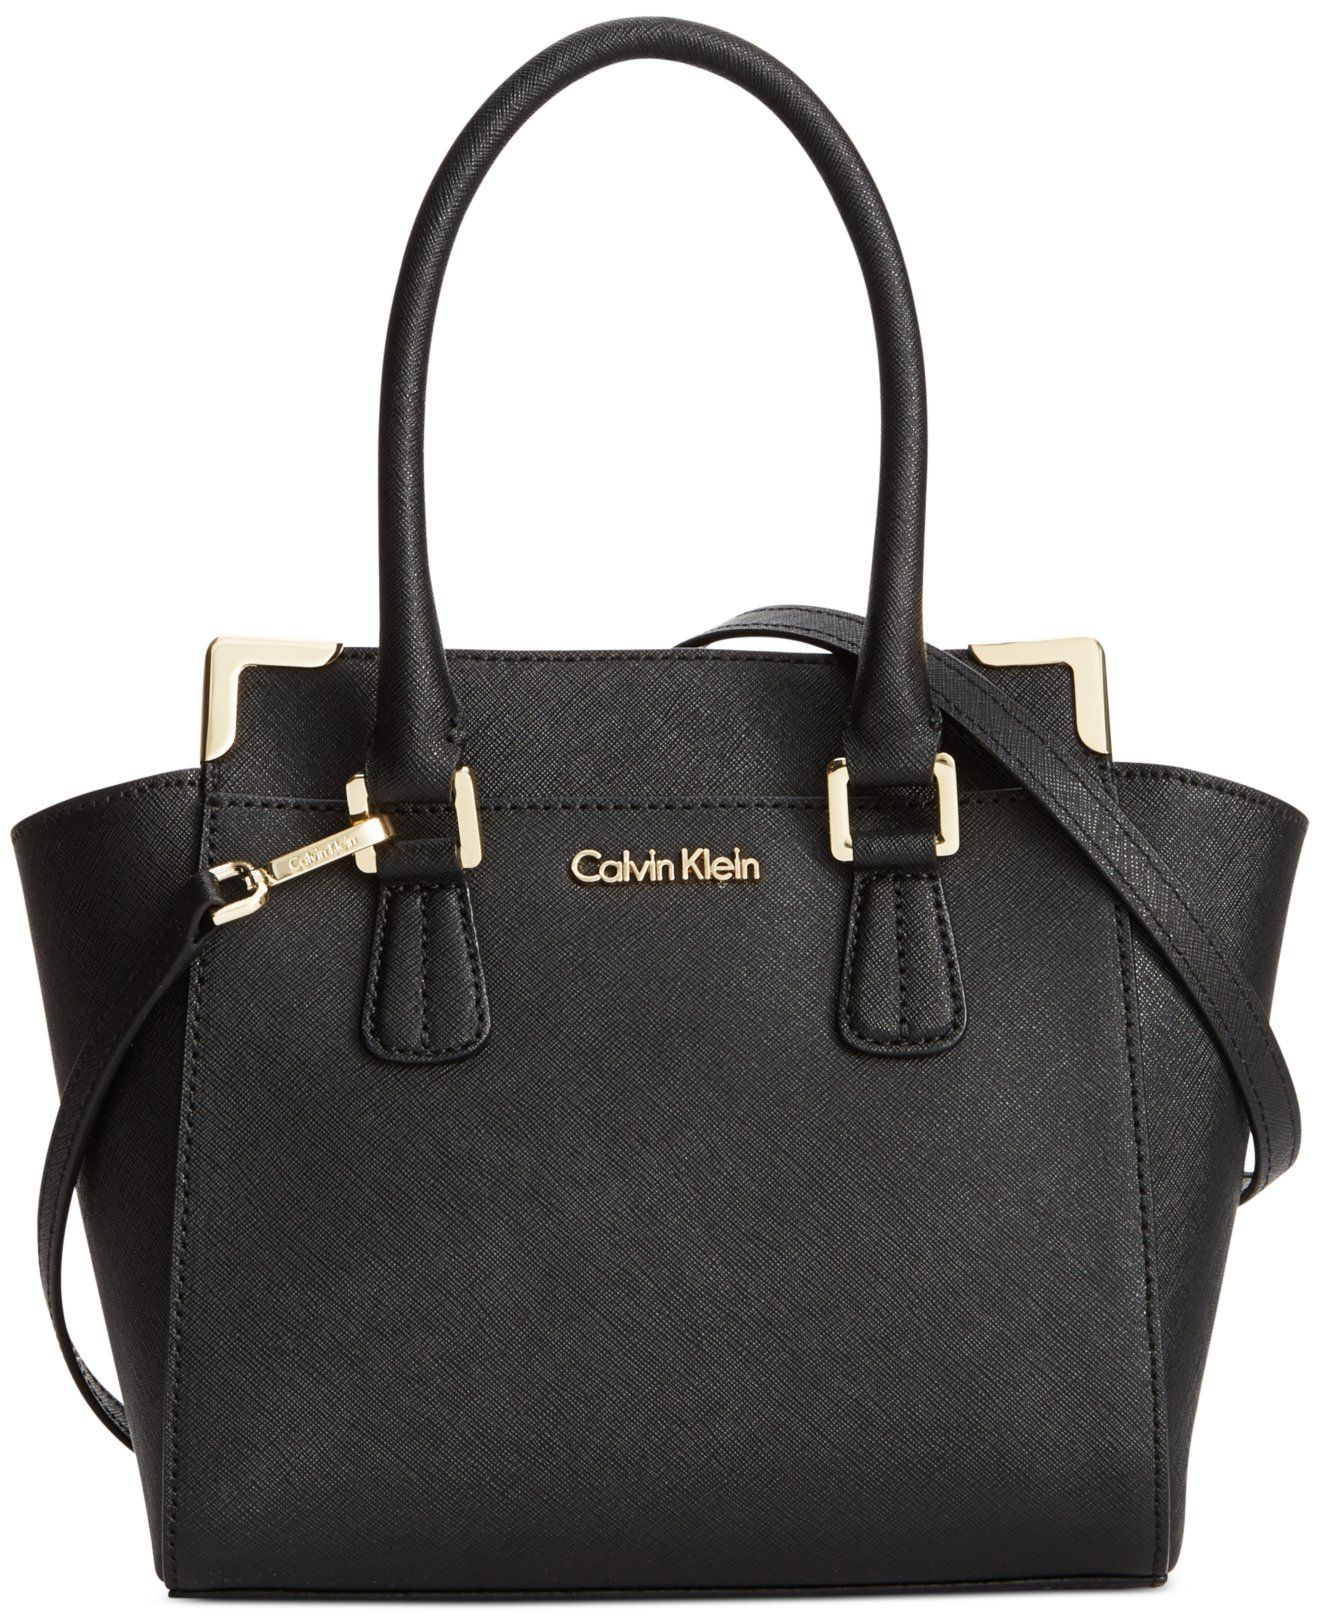 aaeb0c6ec7 Calvin Klein On My Corner Saffiano Crossbody - Handbags & Accessories -  Macy's